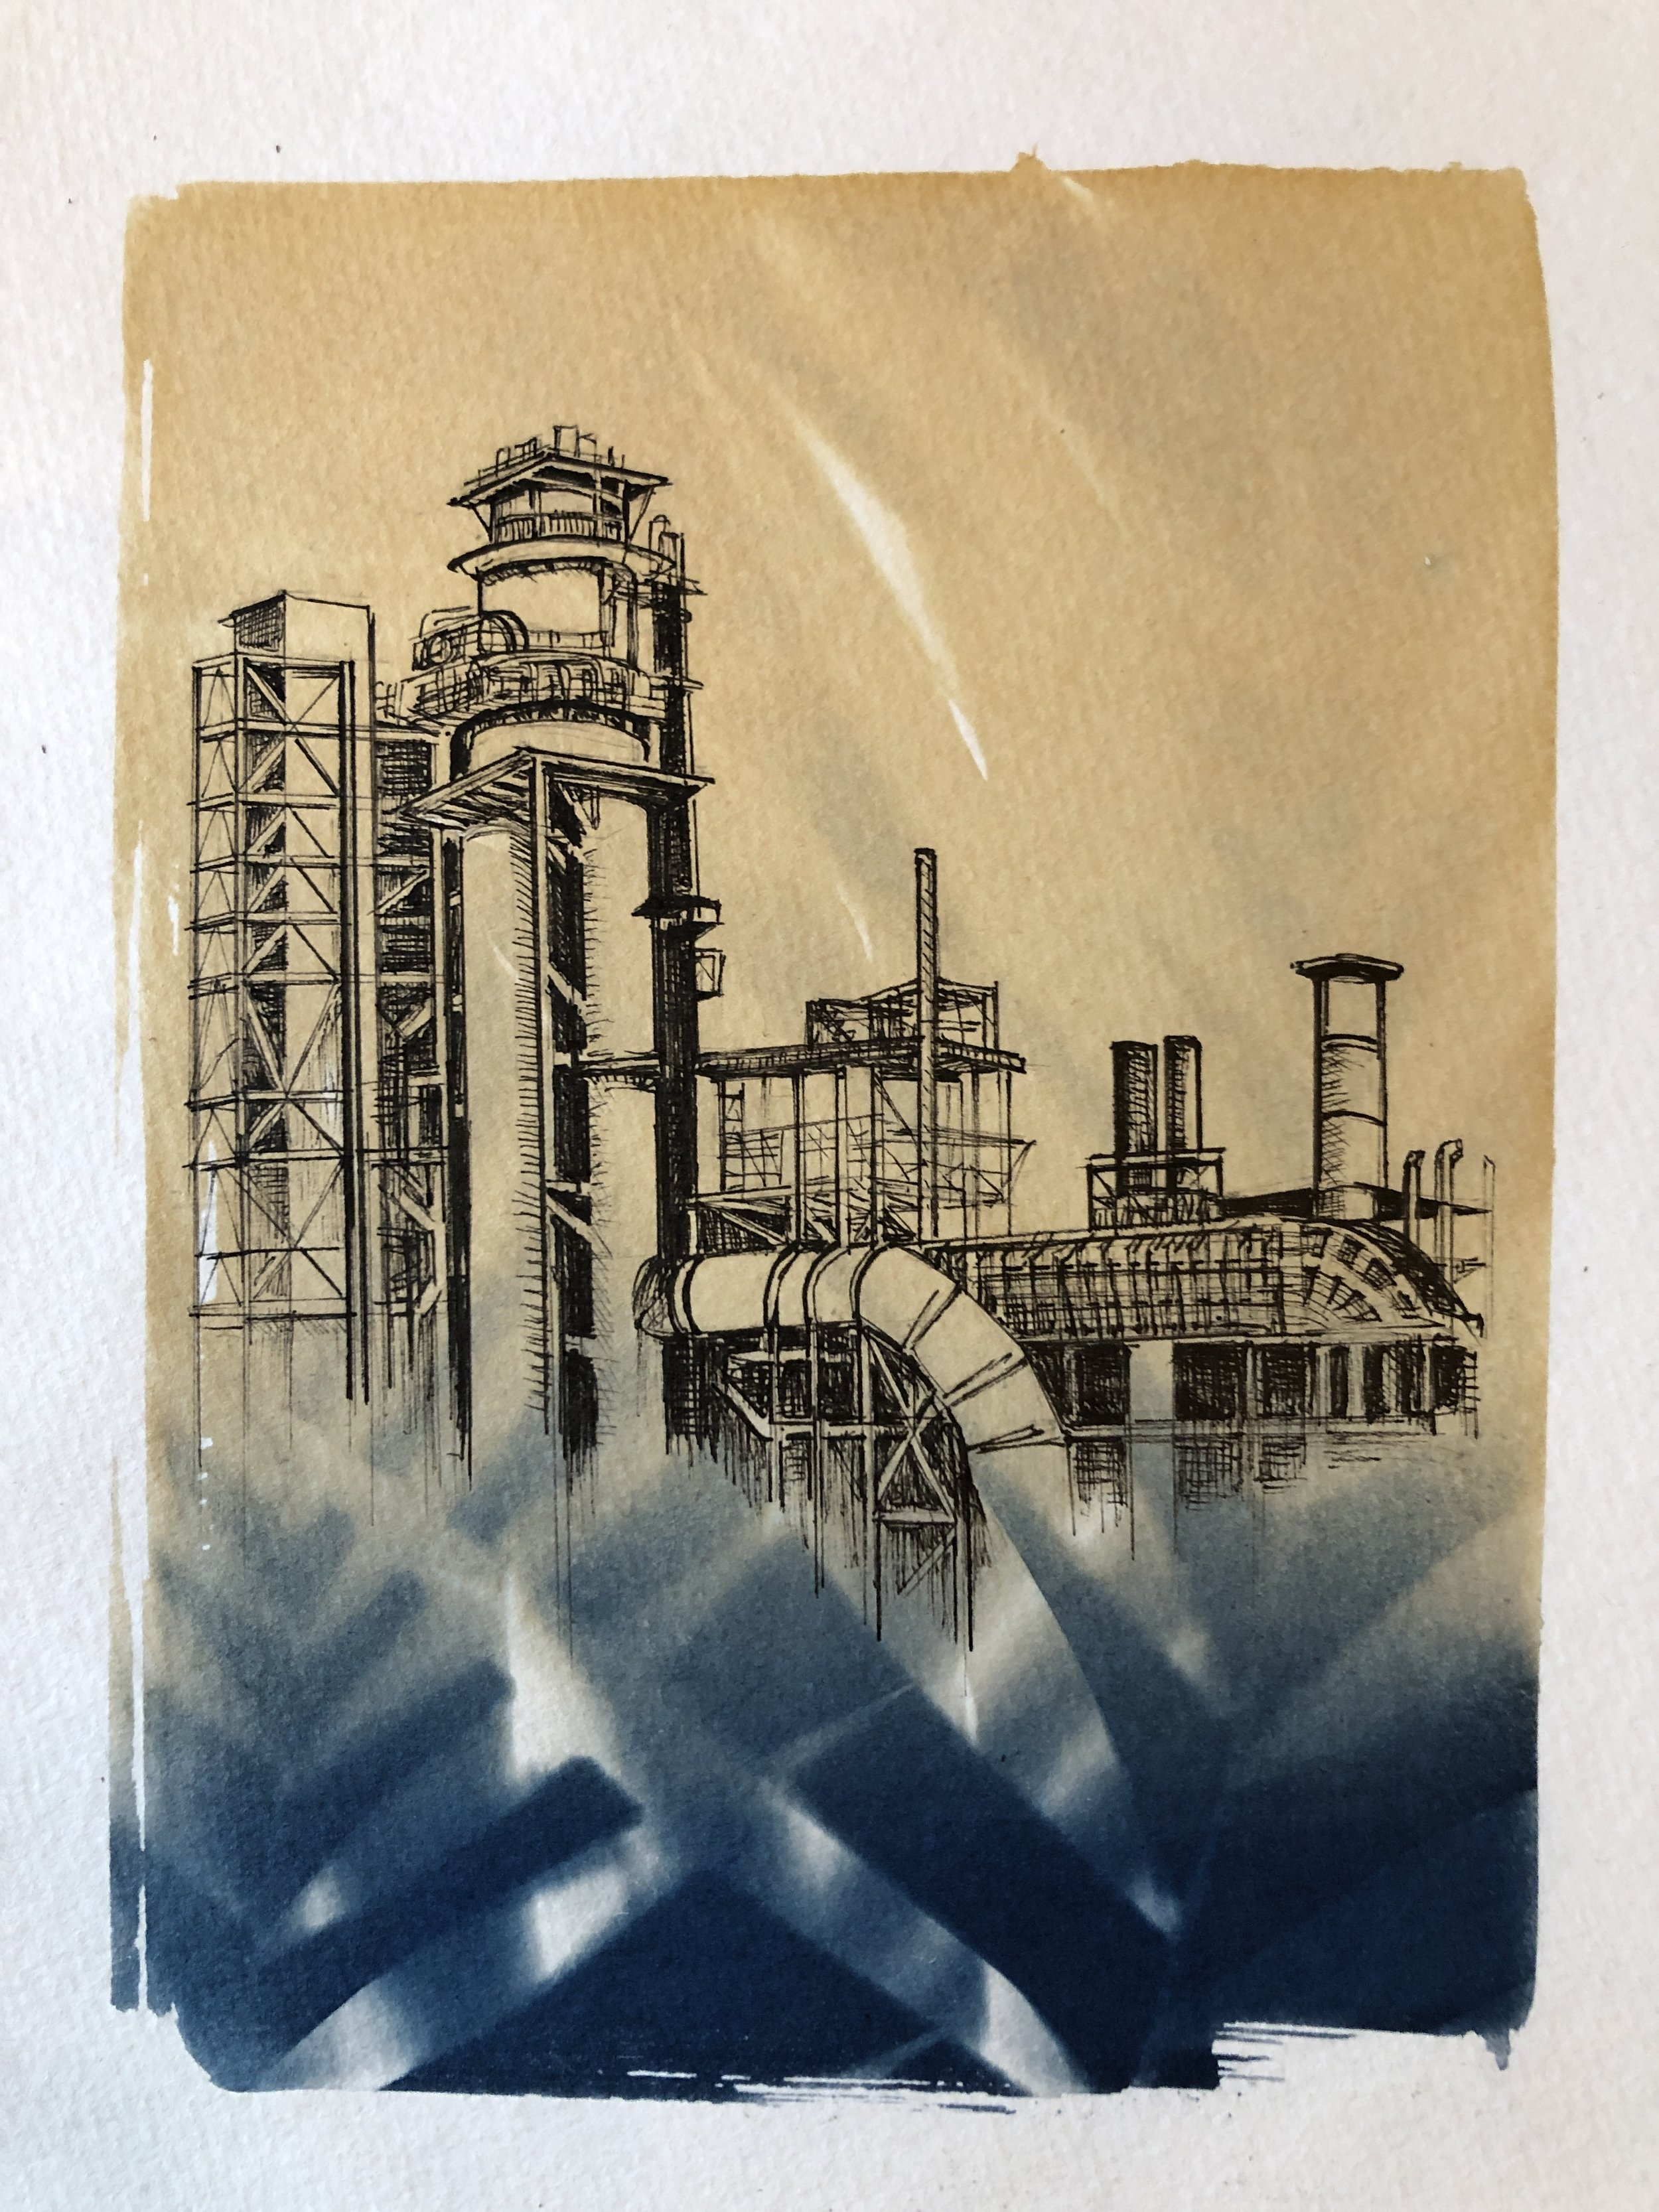 Marie Craig,  Entanglement 12 (oil refinery),  pen and ink on toned cyanotype photograph, 6 x 8 inches.